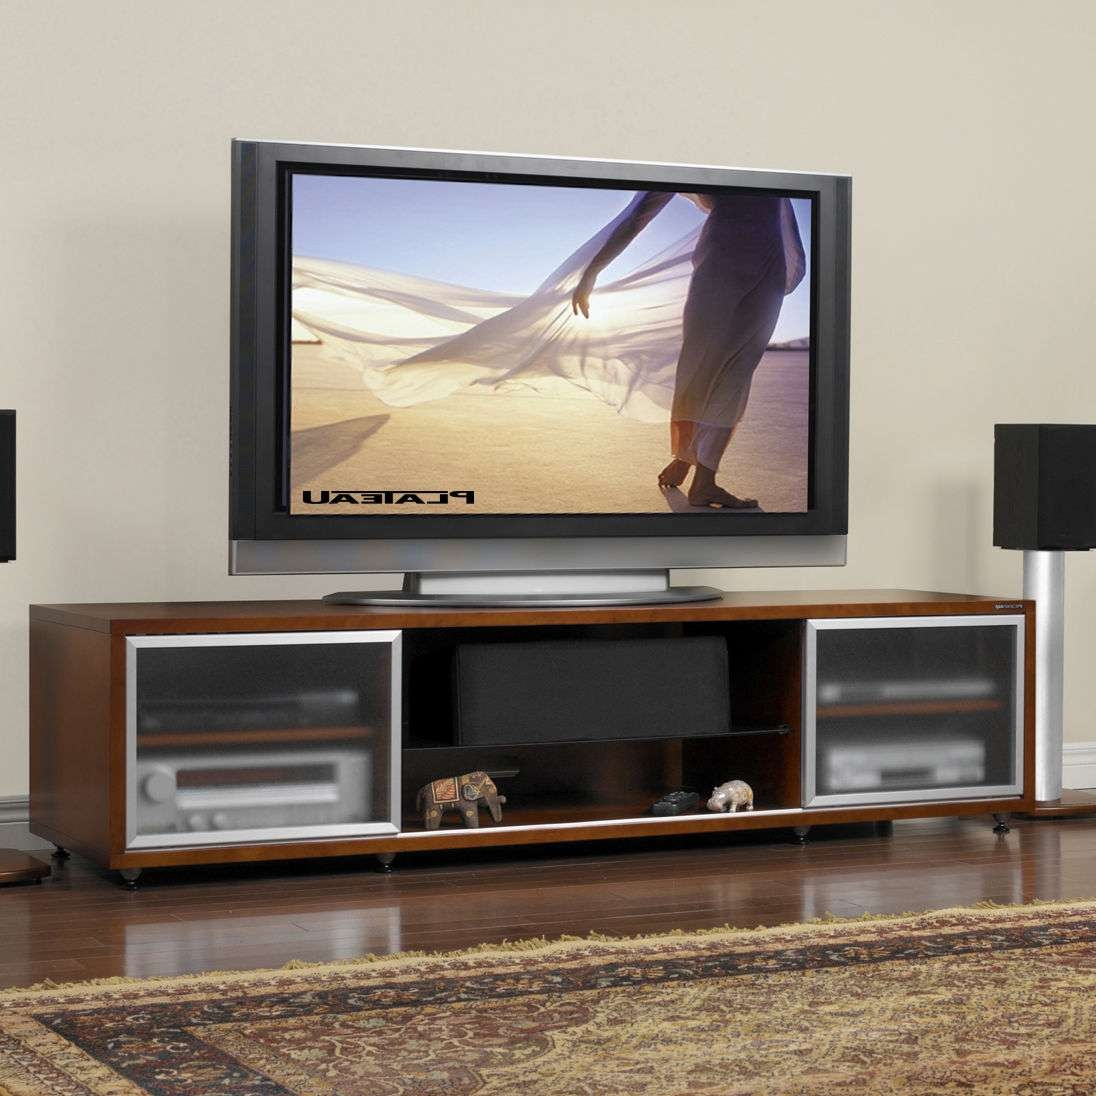 Wooden T V Stand Design Wood Tv Designs Stands Home Furniture And Within Wooden Tv Cabinets With Glass Doors (View 12 of 20)